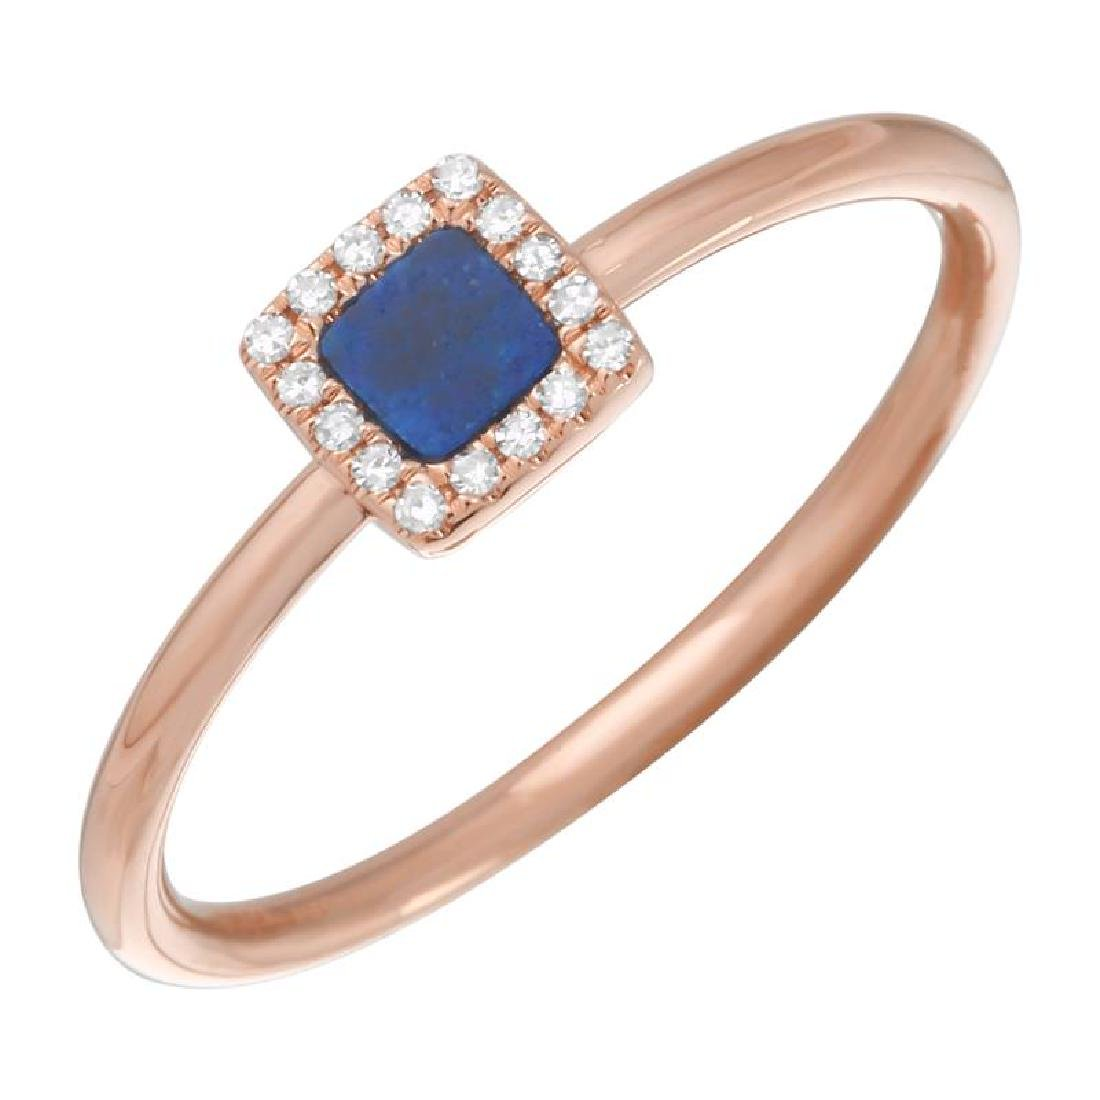 14KT Rose Gold Gemstone Ring